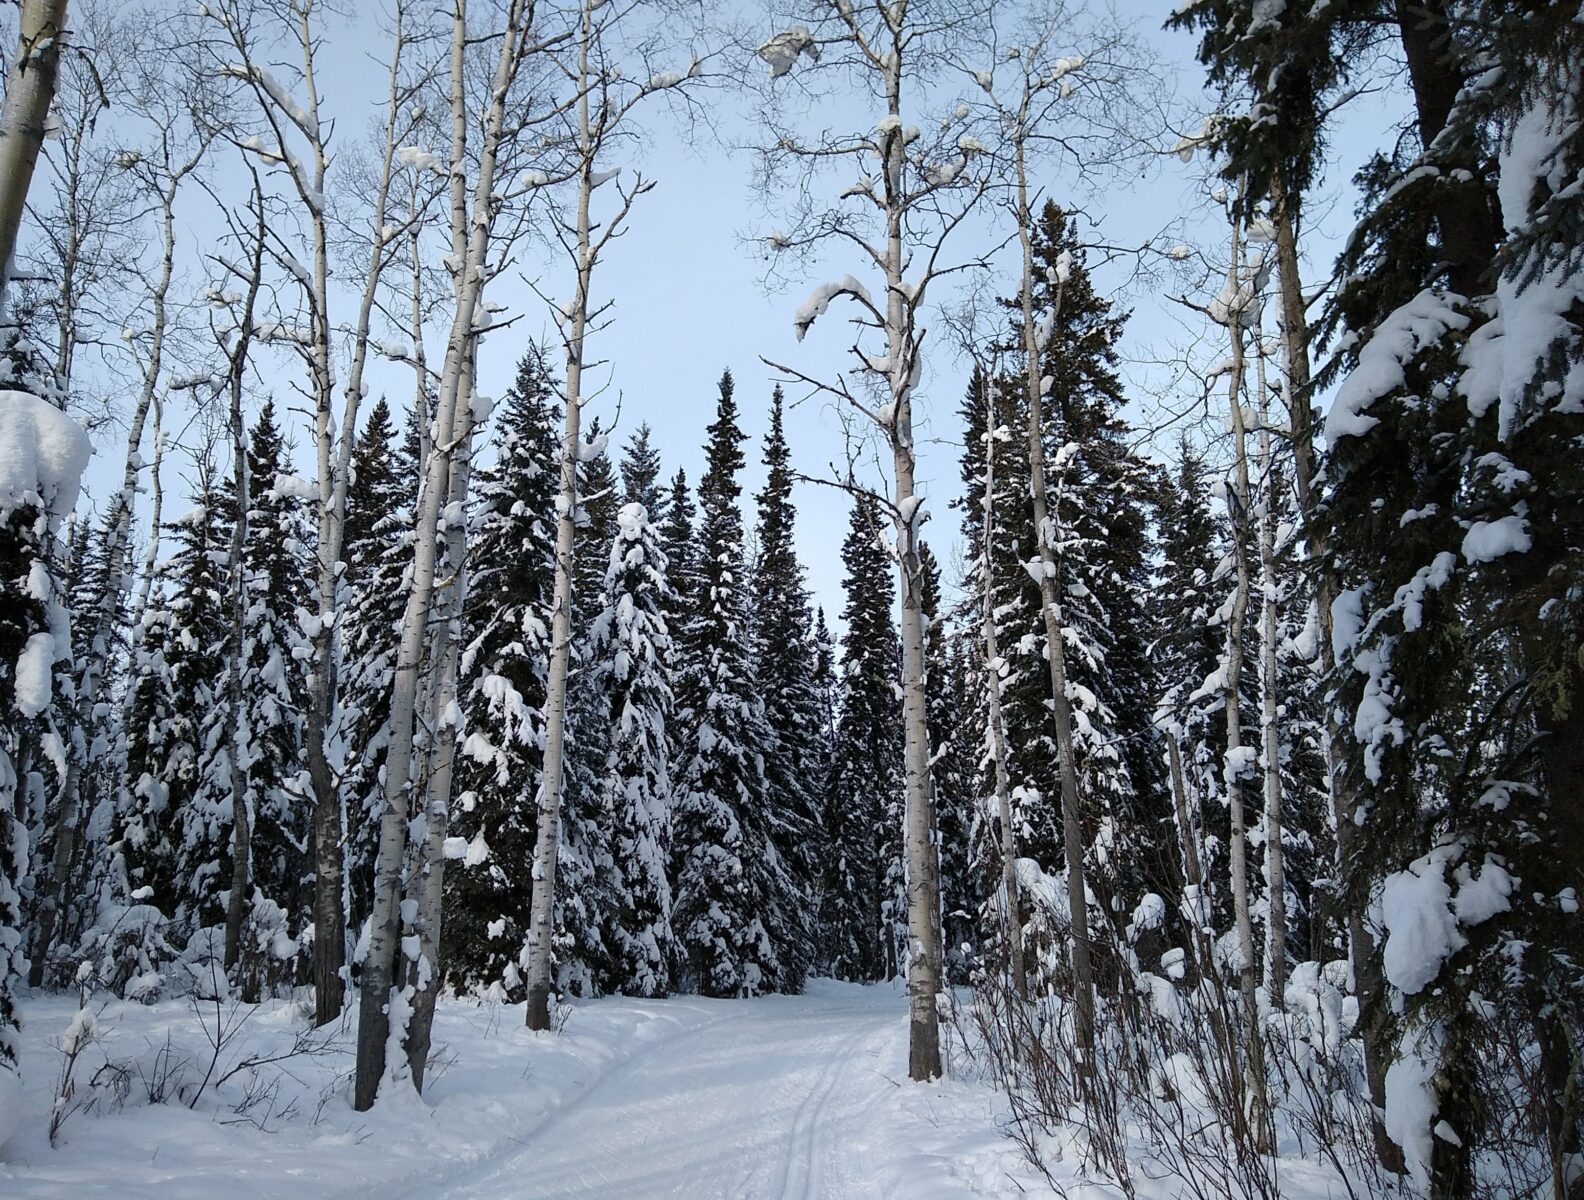 Snowy evergreen and birch trees along the UAF ski trail system, one of the many winter things to do in Fairbanks